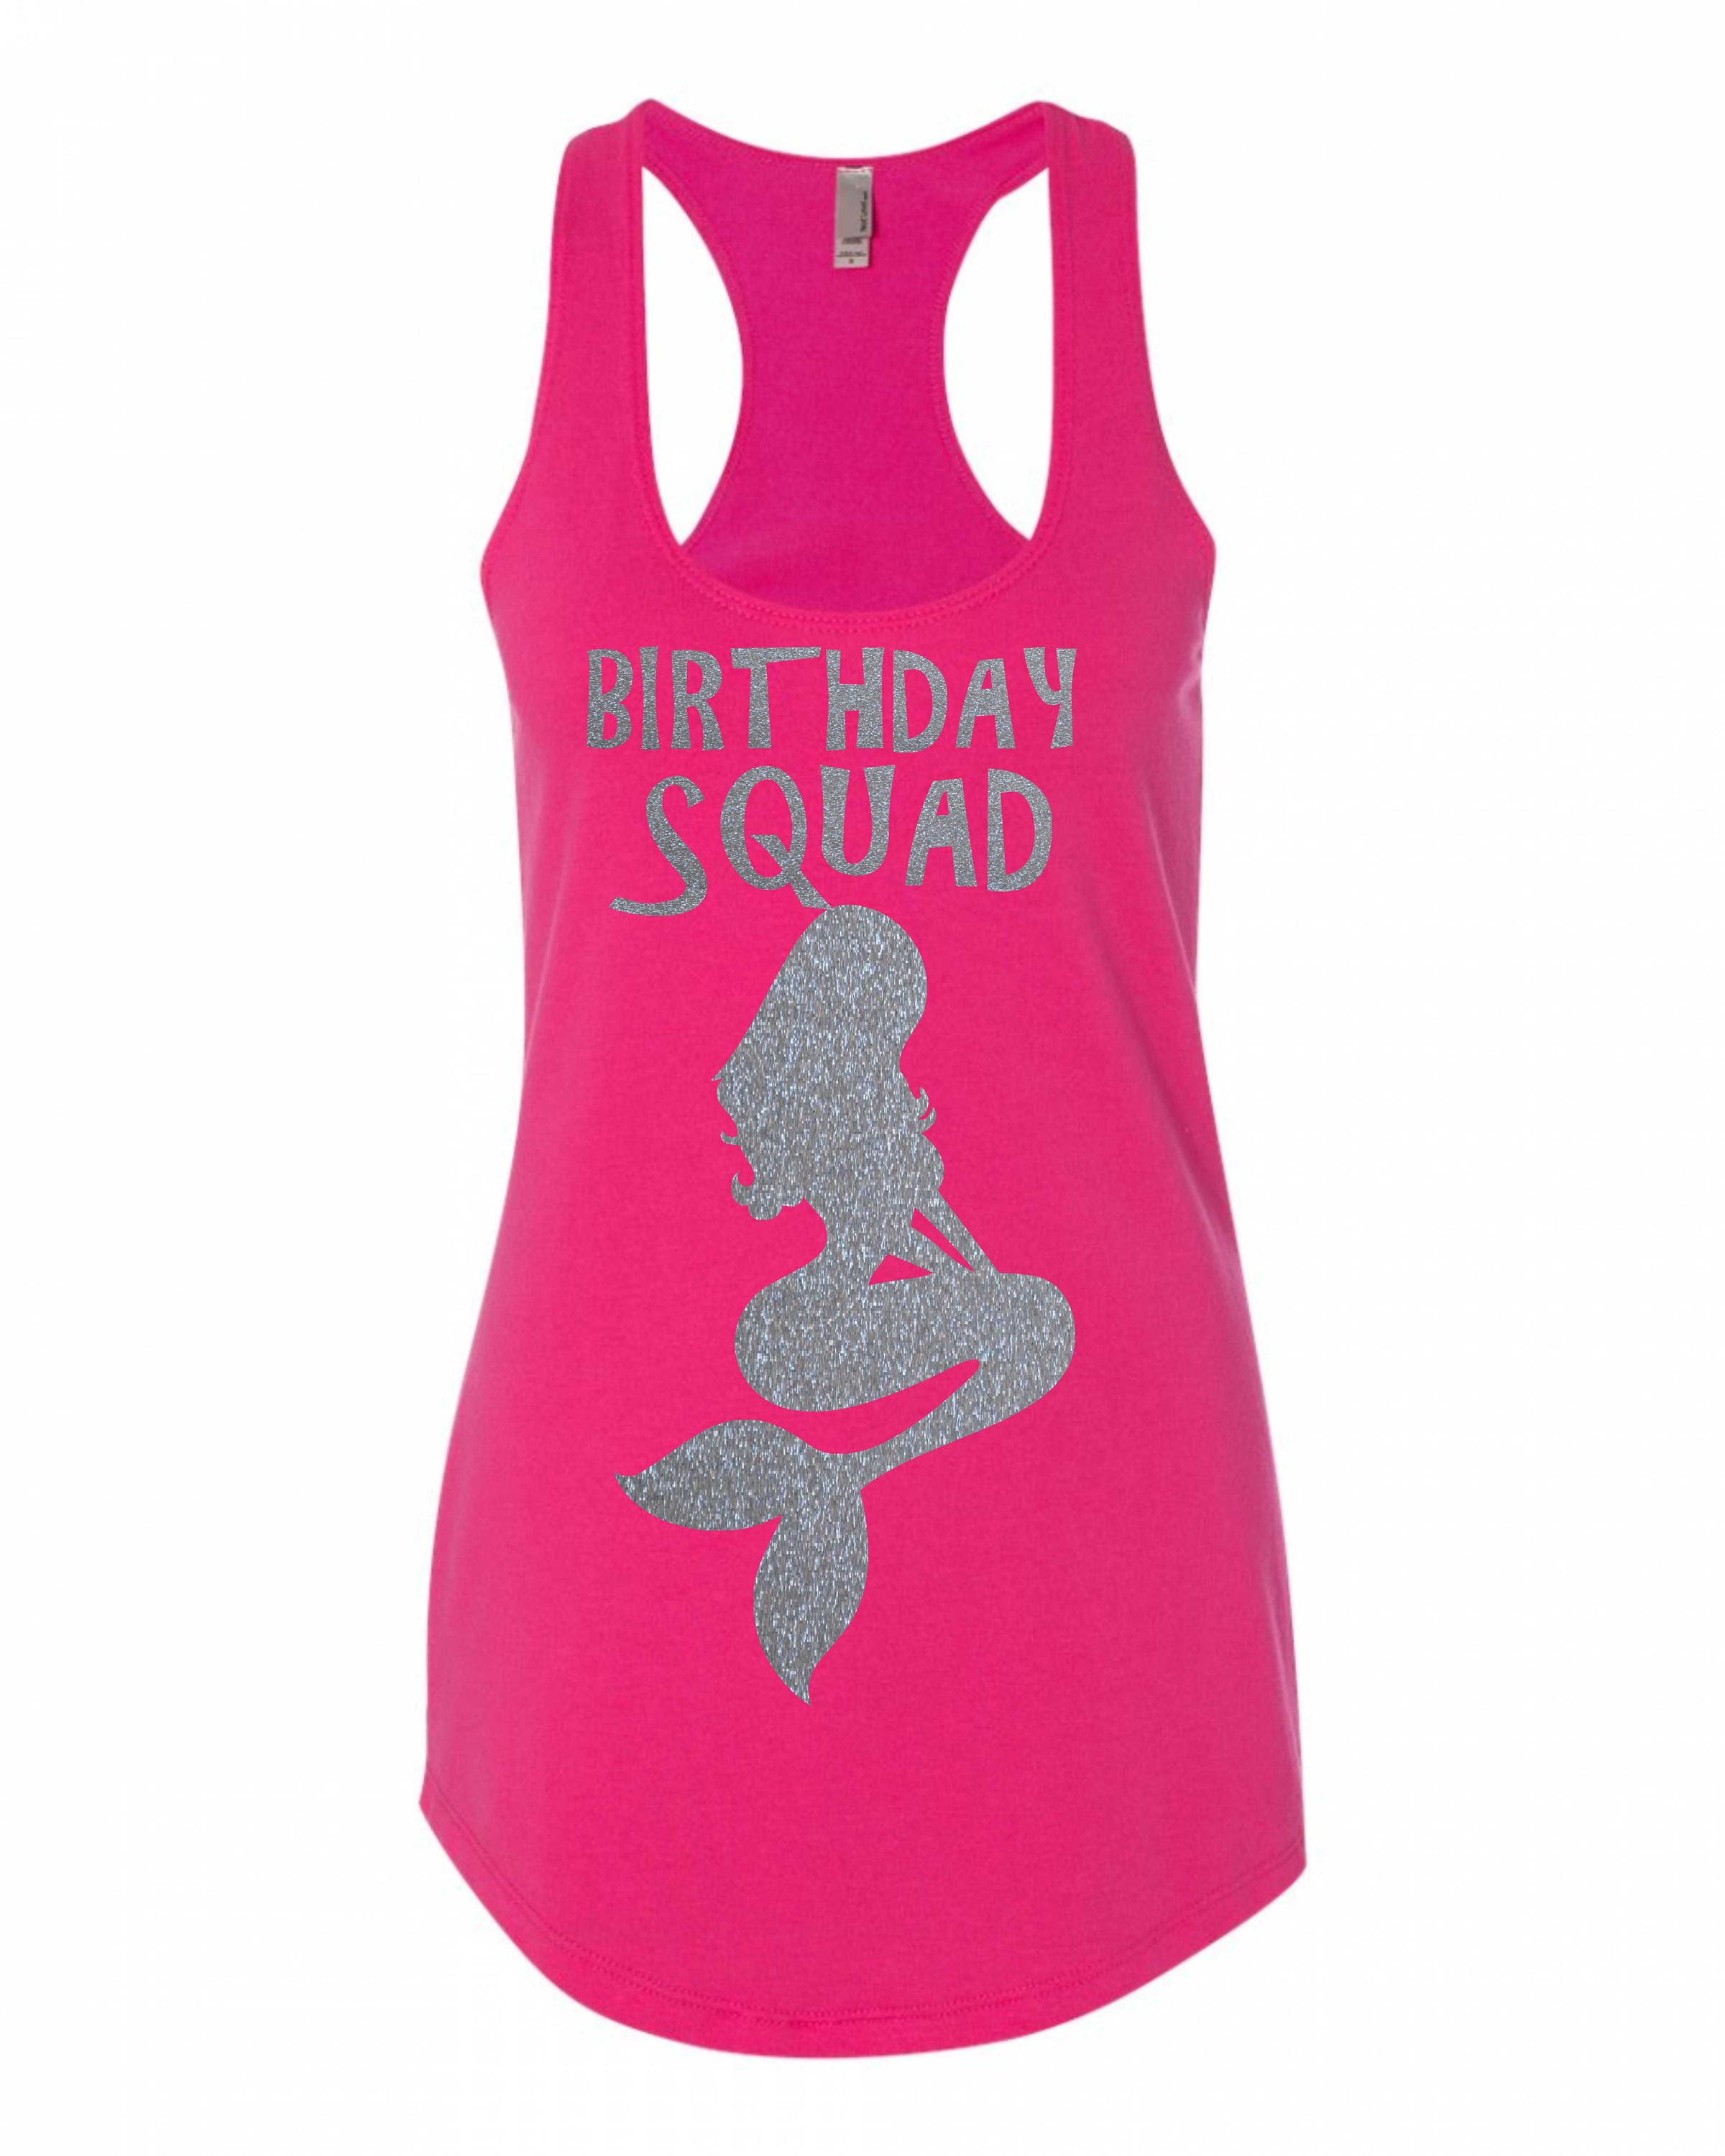 Mermaid Birthday Squad Shirts Cute Sexy Fun Beach Personalized Tanks Island With Glitter Ocean Sand